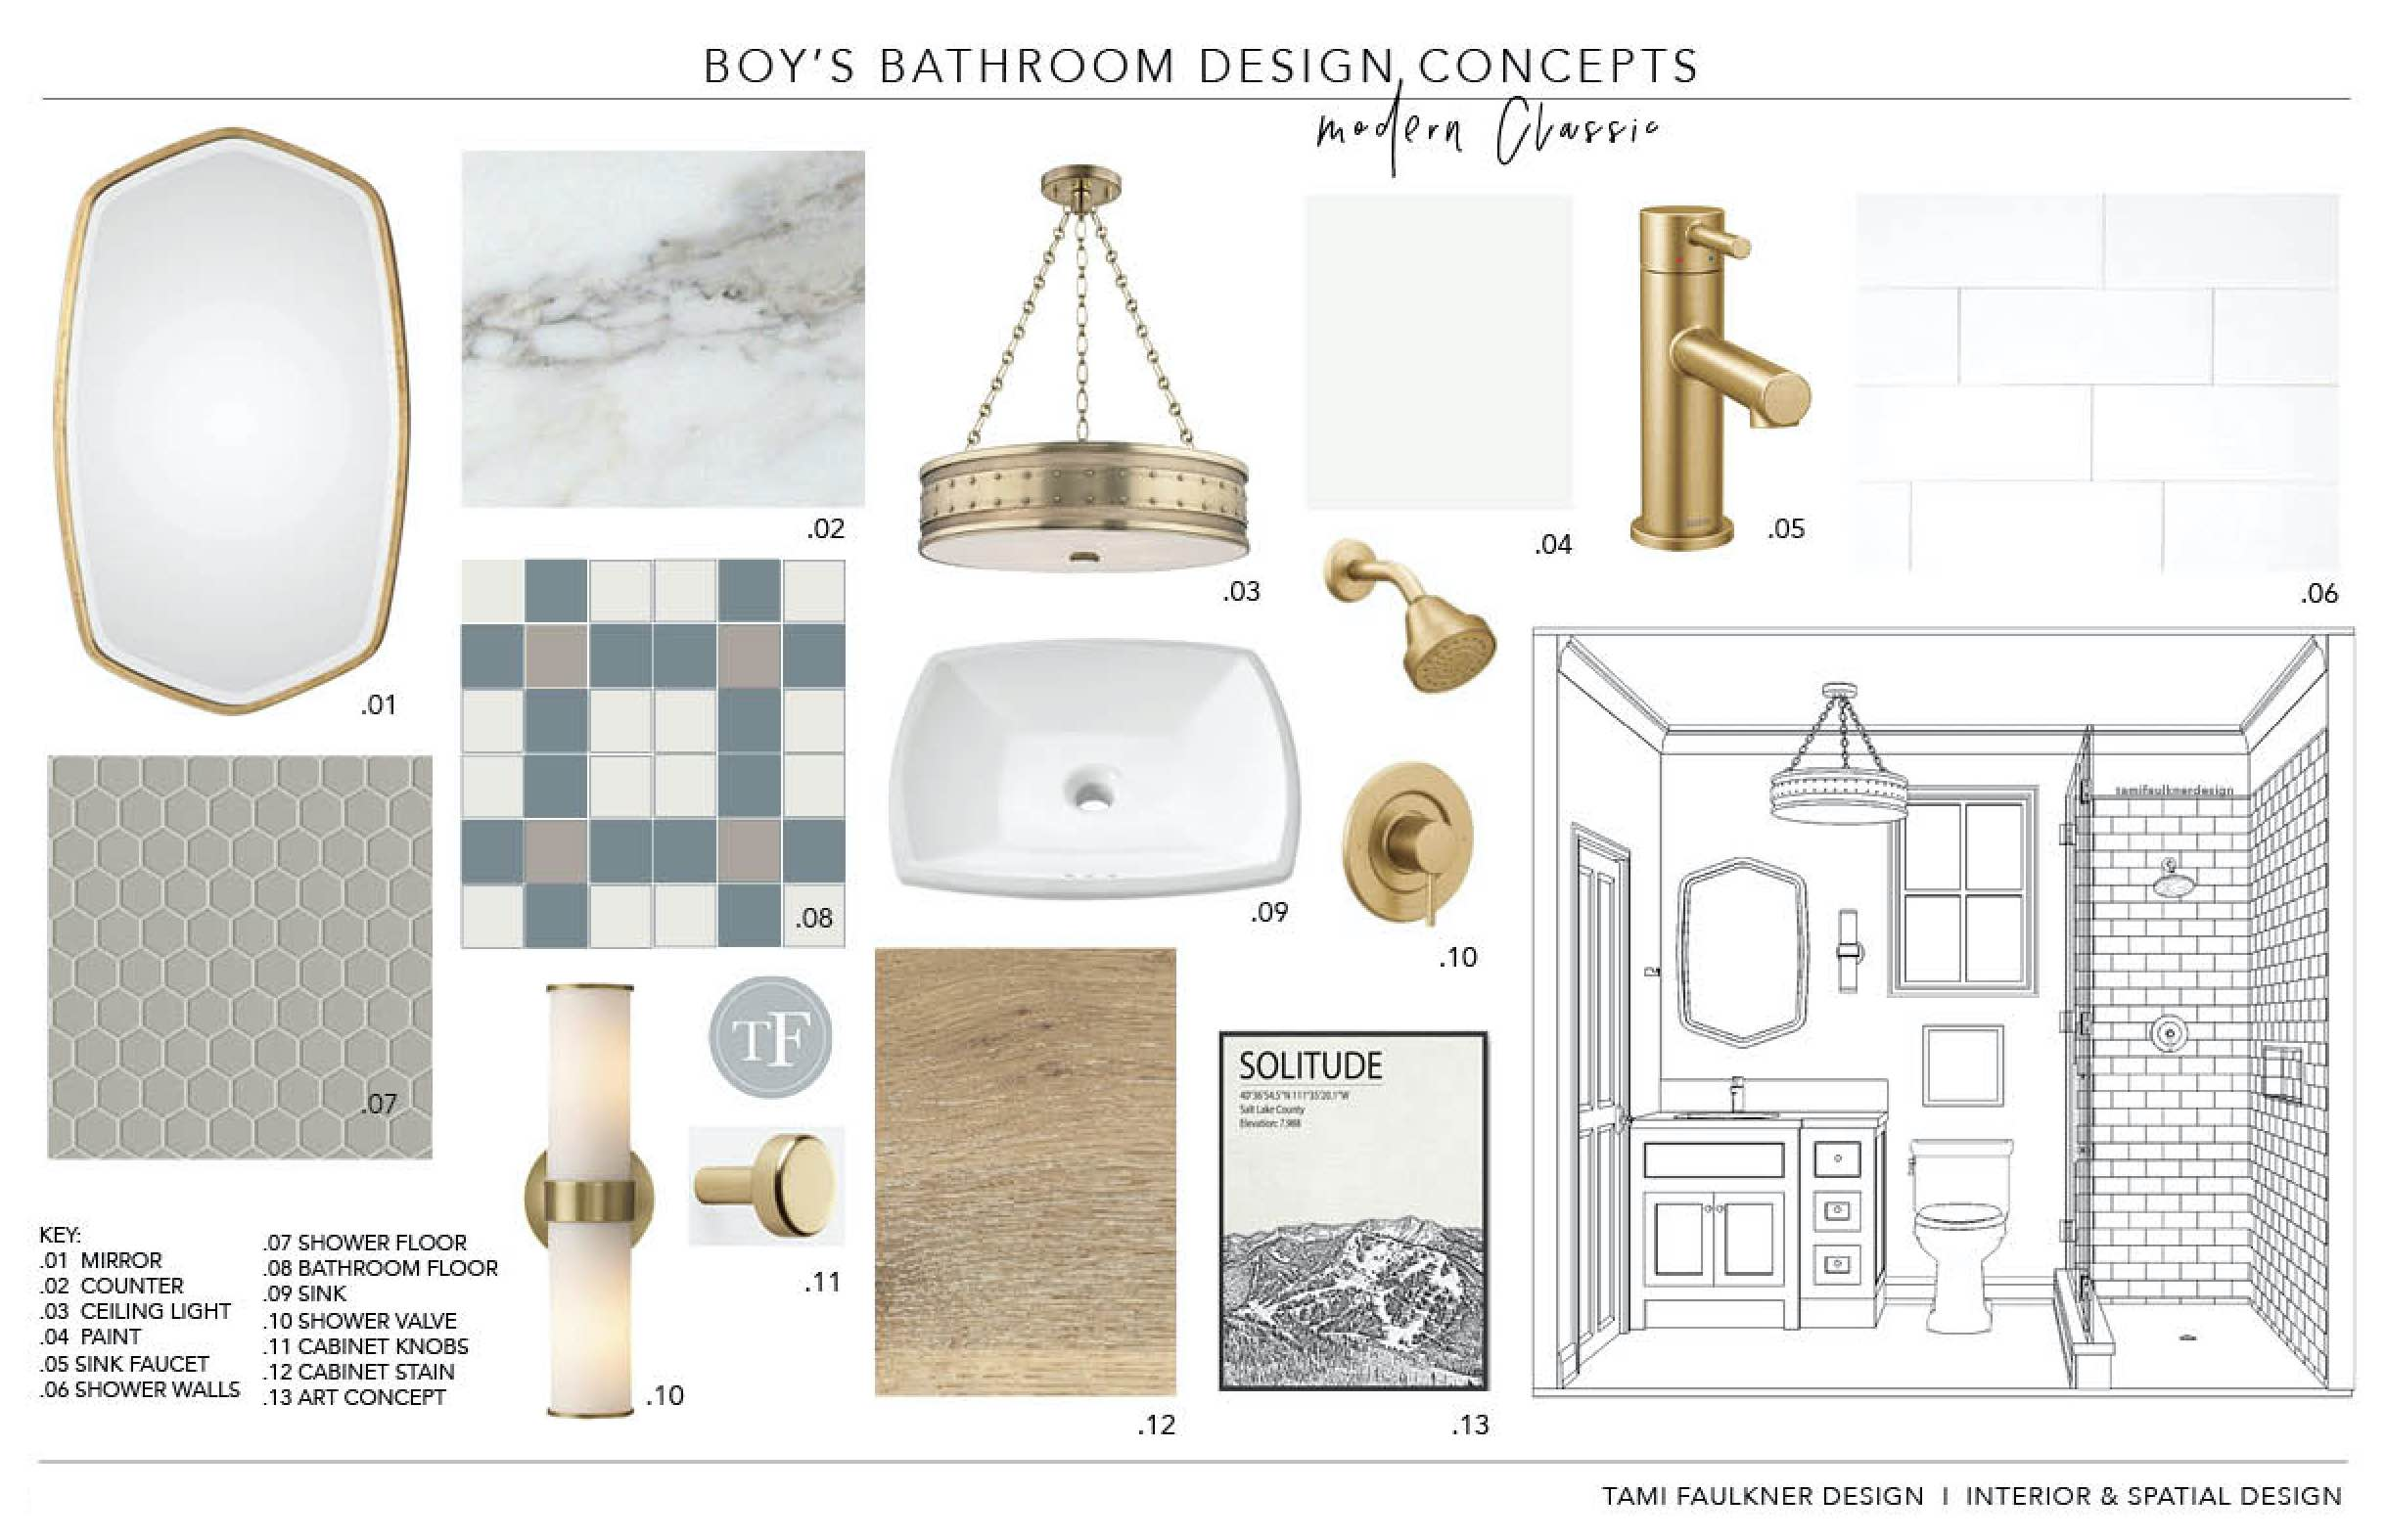 CONCEPT BOARD - GOLD FINISHES